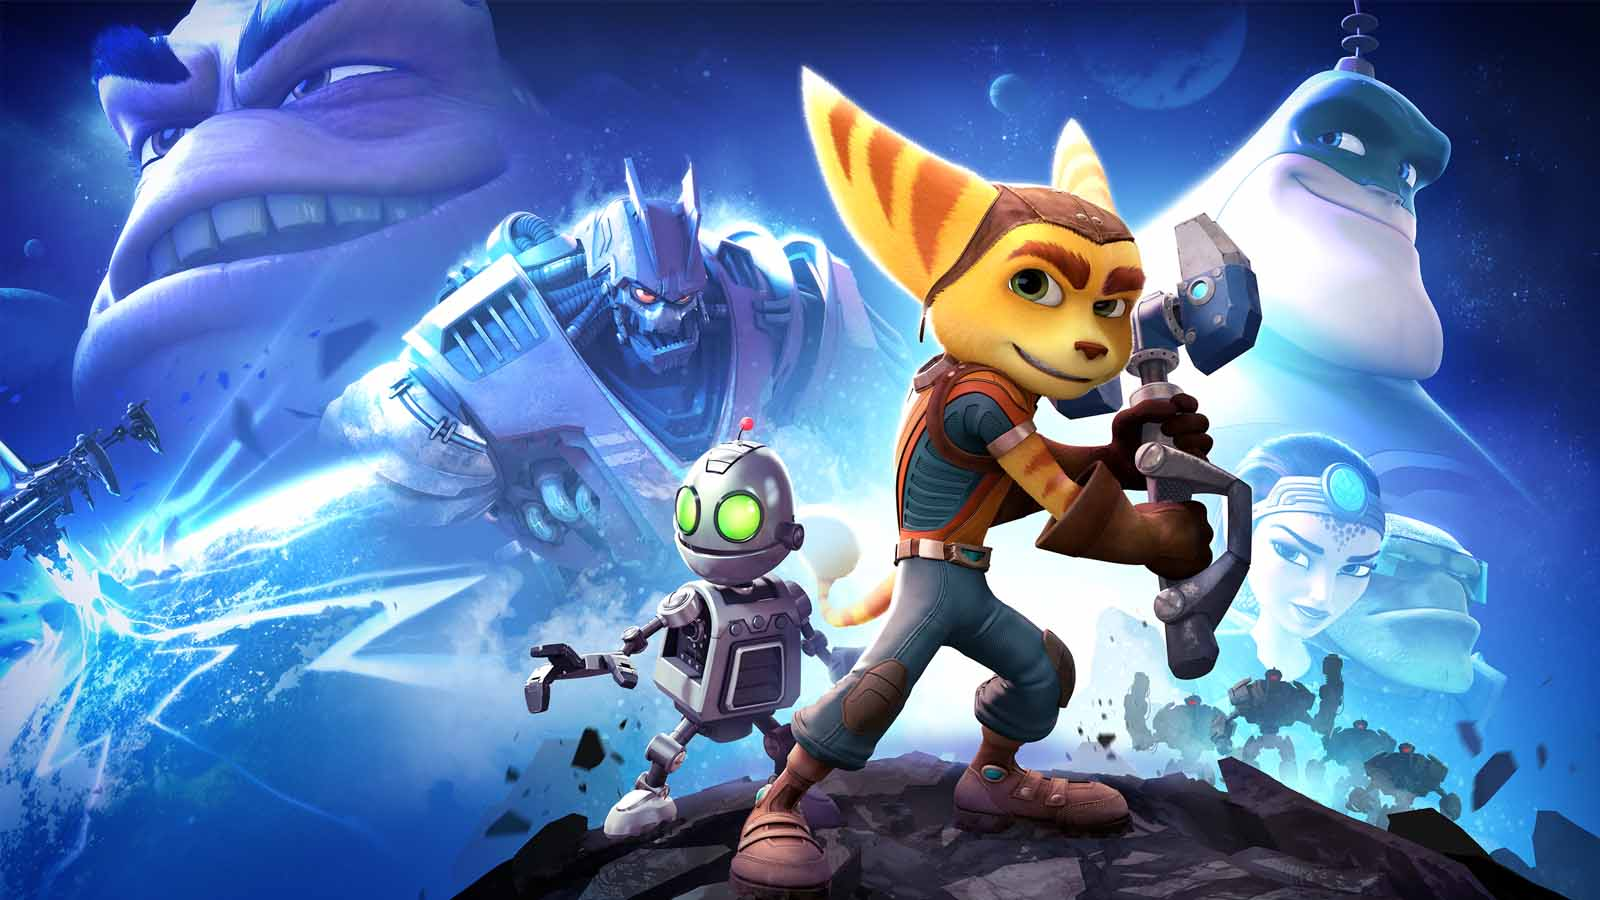 ratchet & clank on playstation